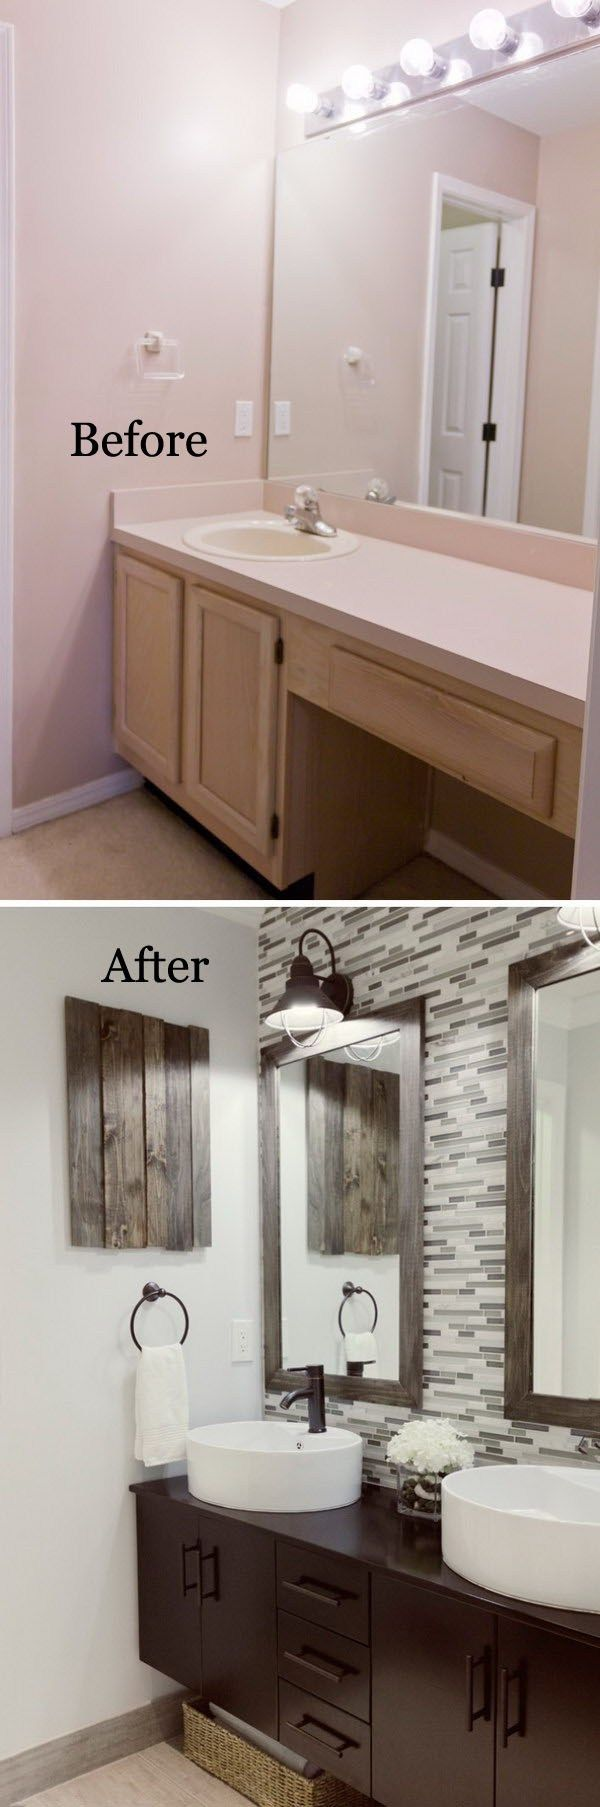 37 Small Bathroom Makeovers Before And After Pics With Images